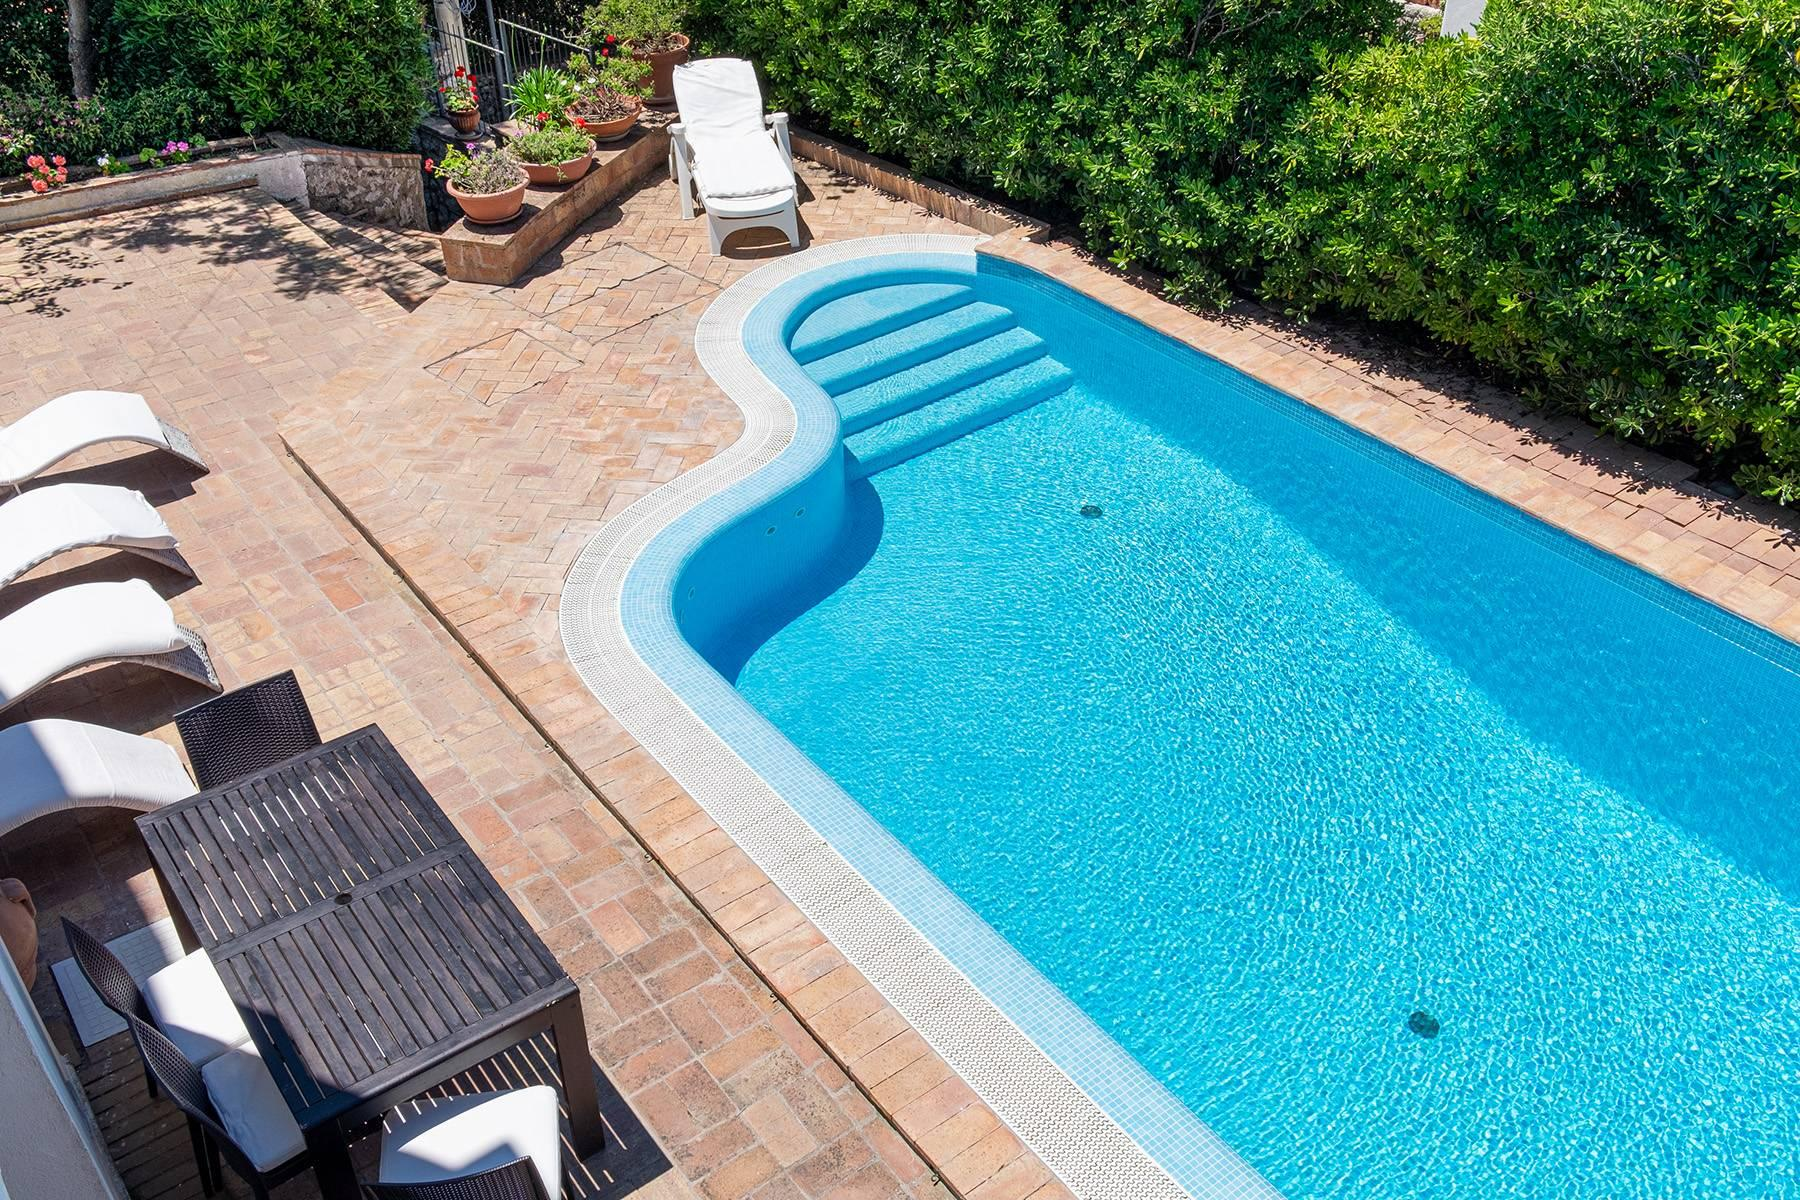 Charming villa with swimming pool in Anacapri - 21